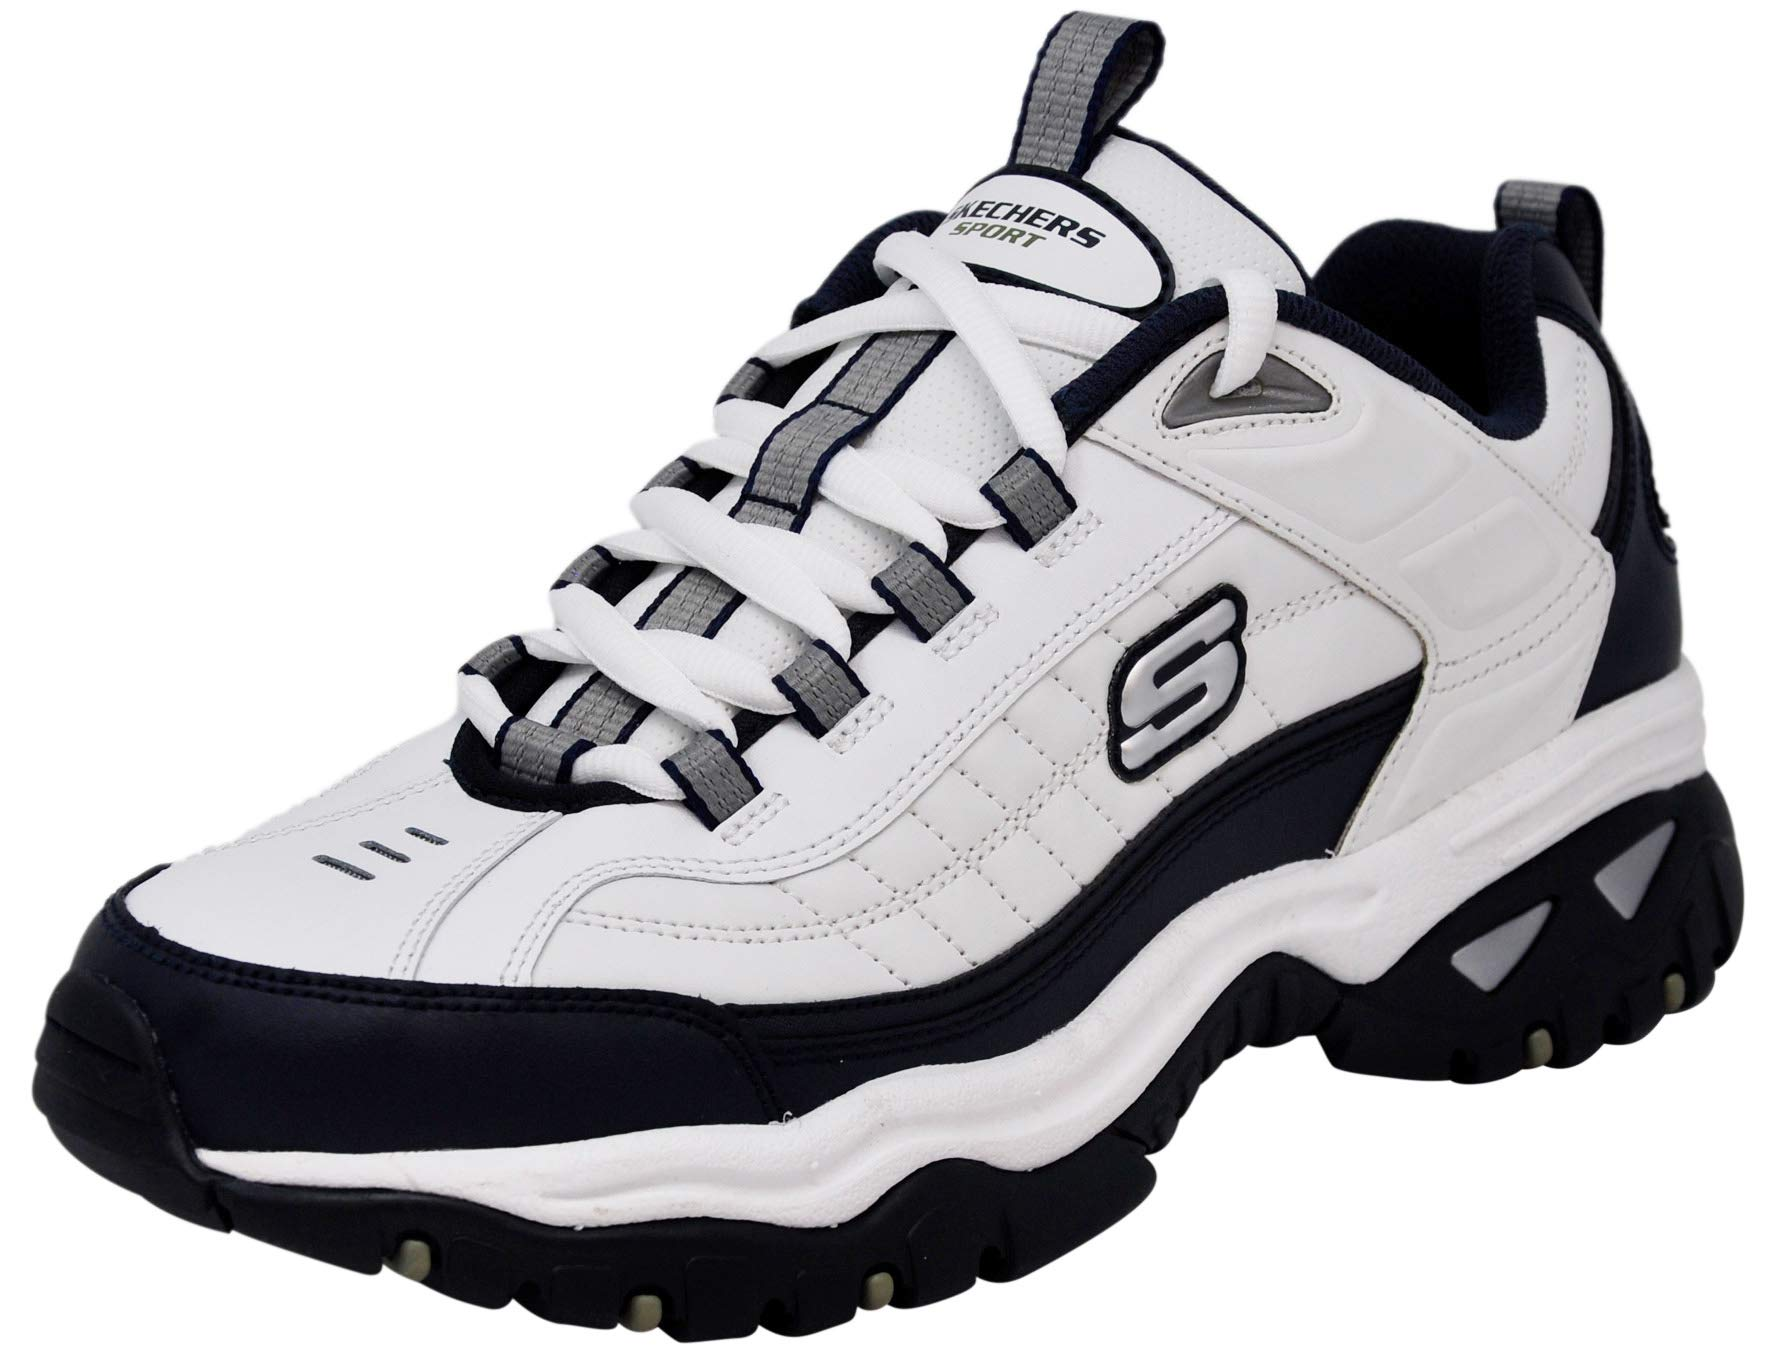 Skechers Men's Energy Afterburn Lace-Up Sneaker, White/Navy Blue, 9 M US by Skechers